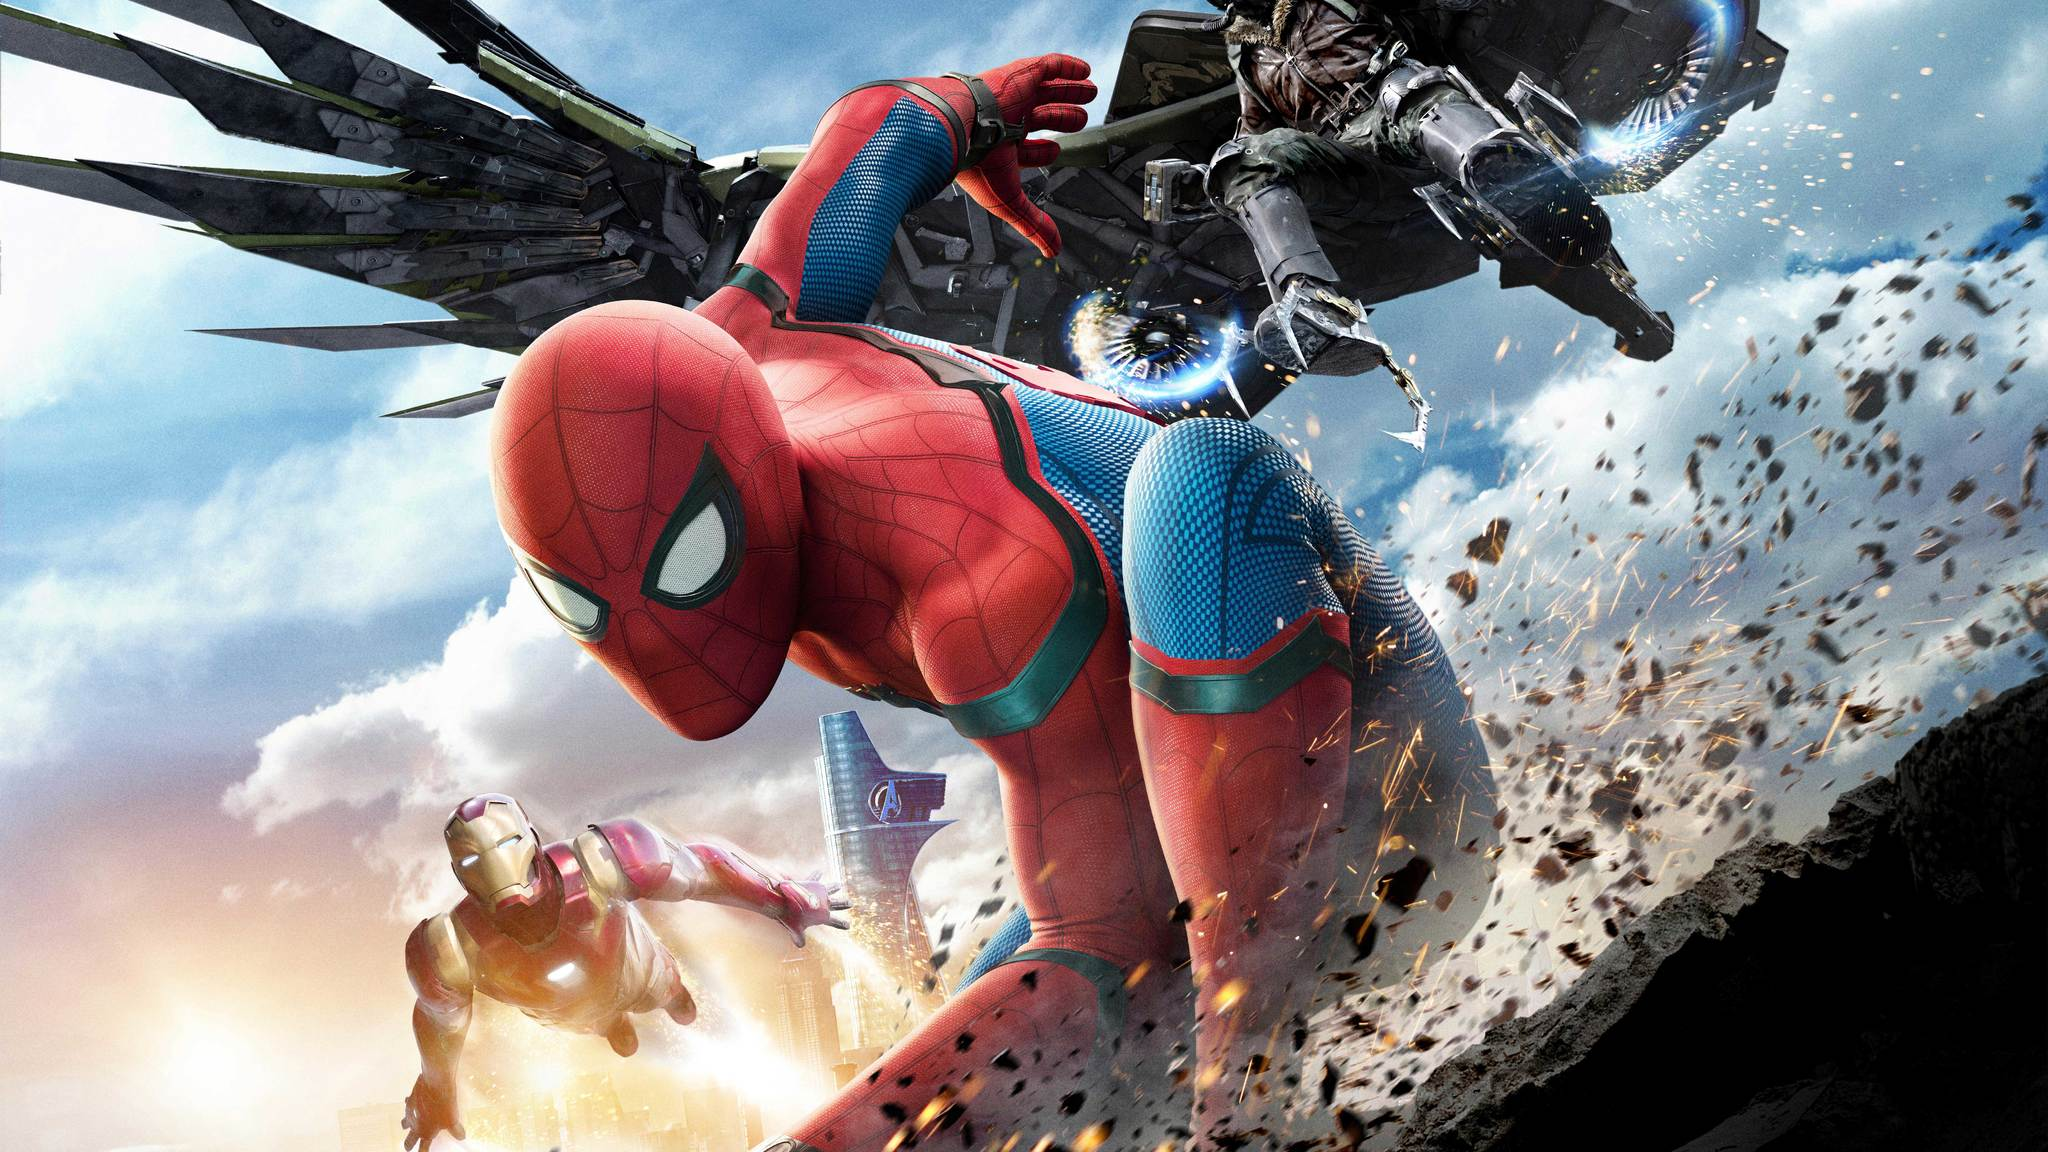 Best Spiderman Homecoming Wallpaper 2019 83700 Wallpaper 2048x1152